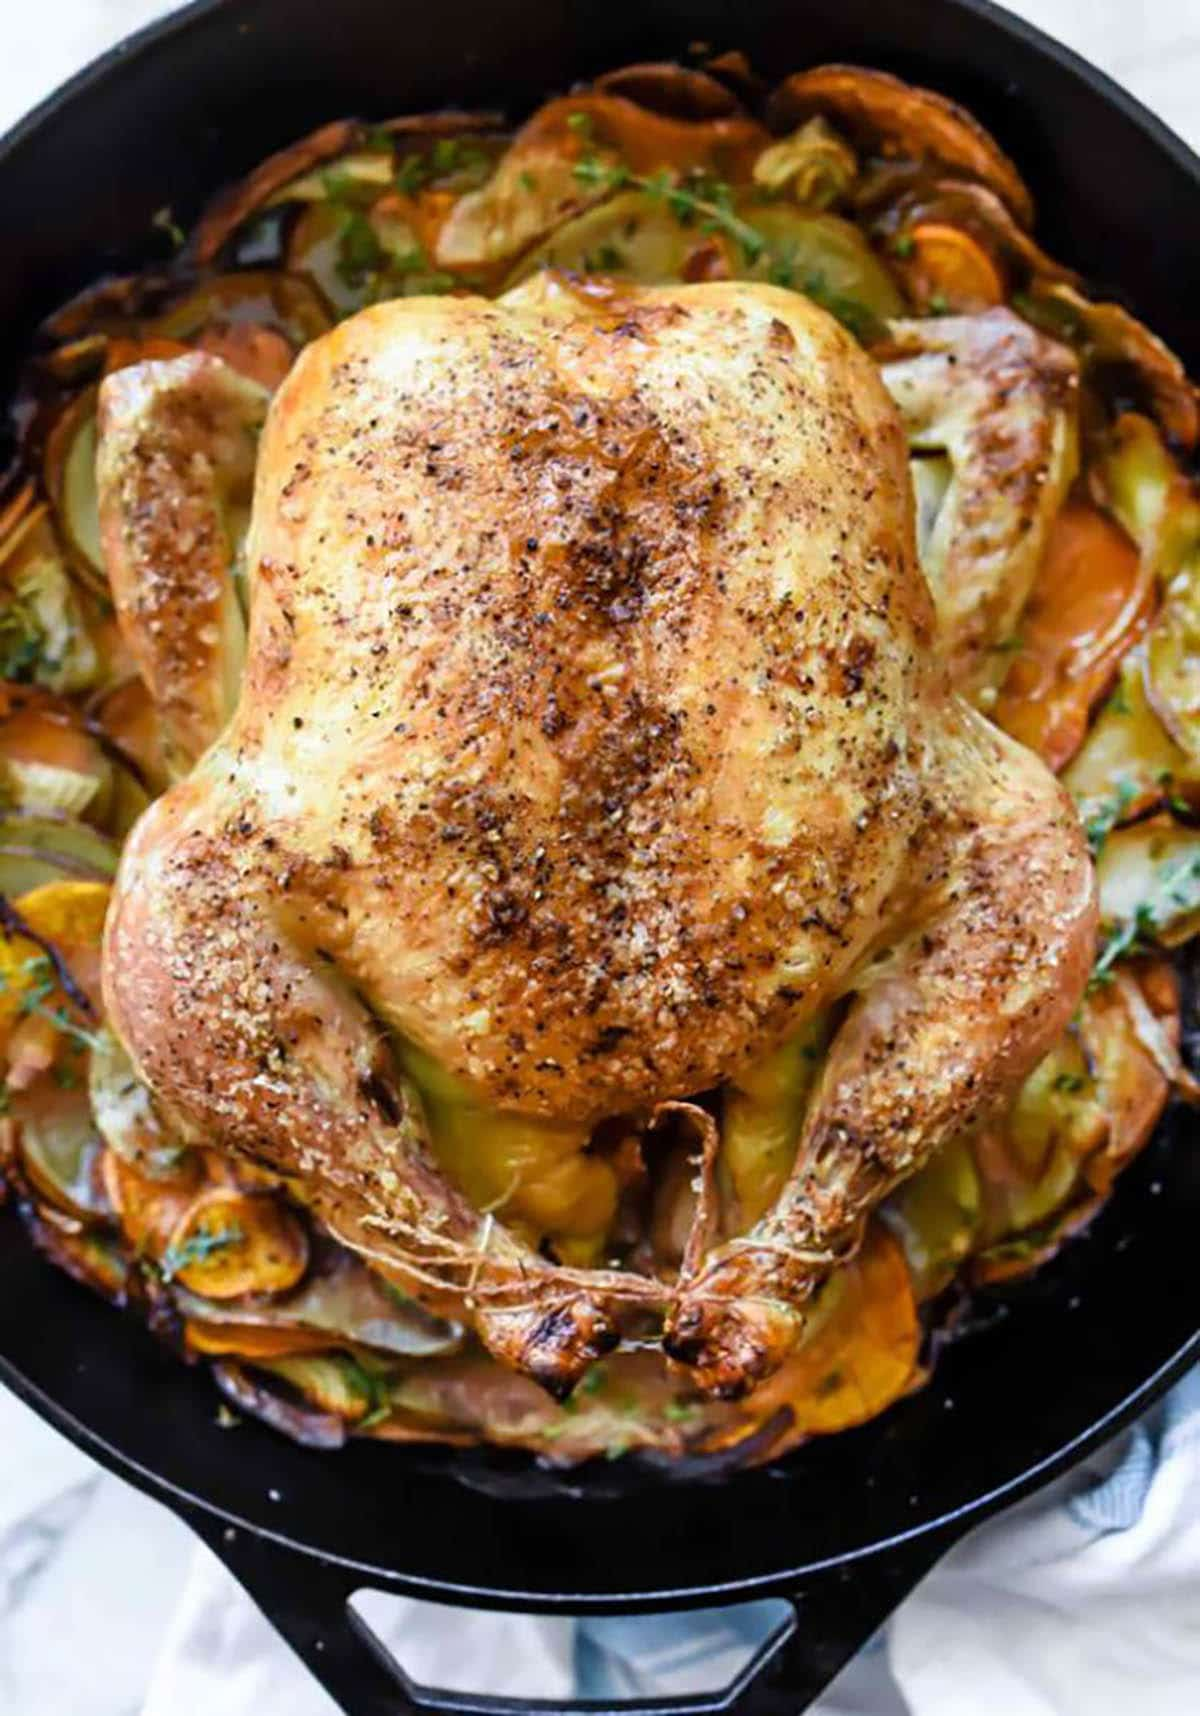 Roasted Chicken With Potatoes in a cast iron pan